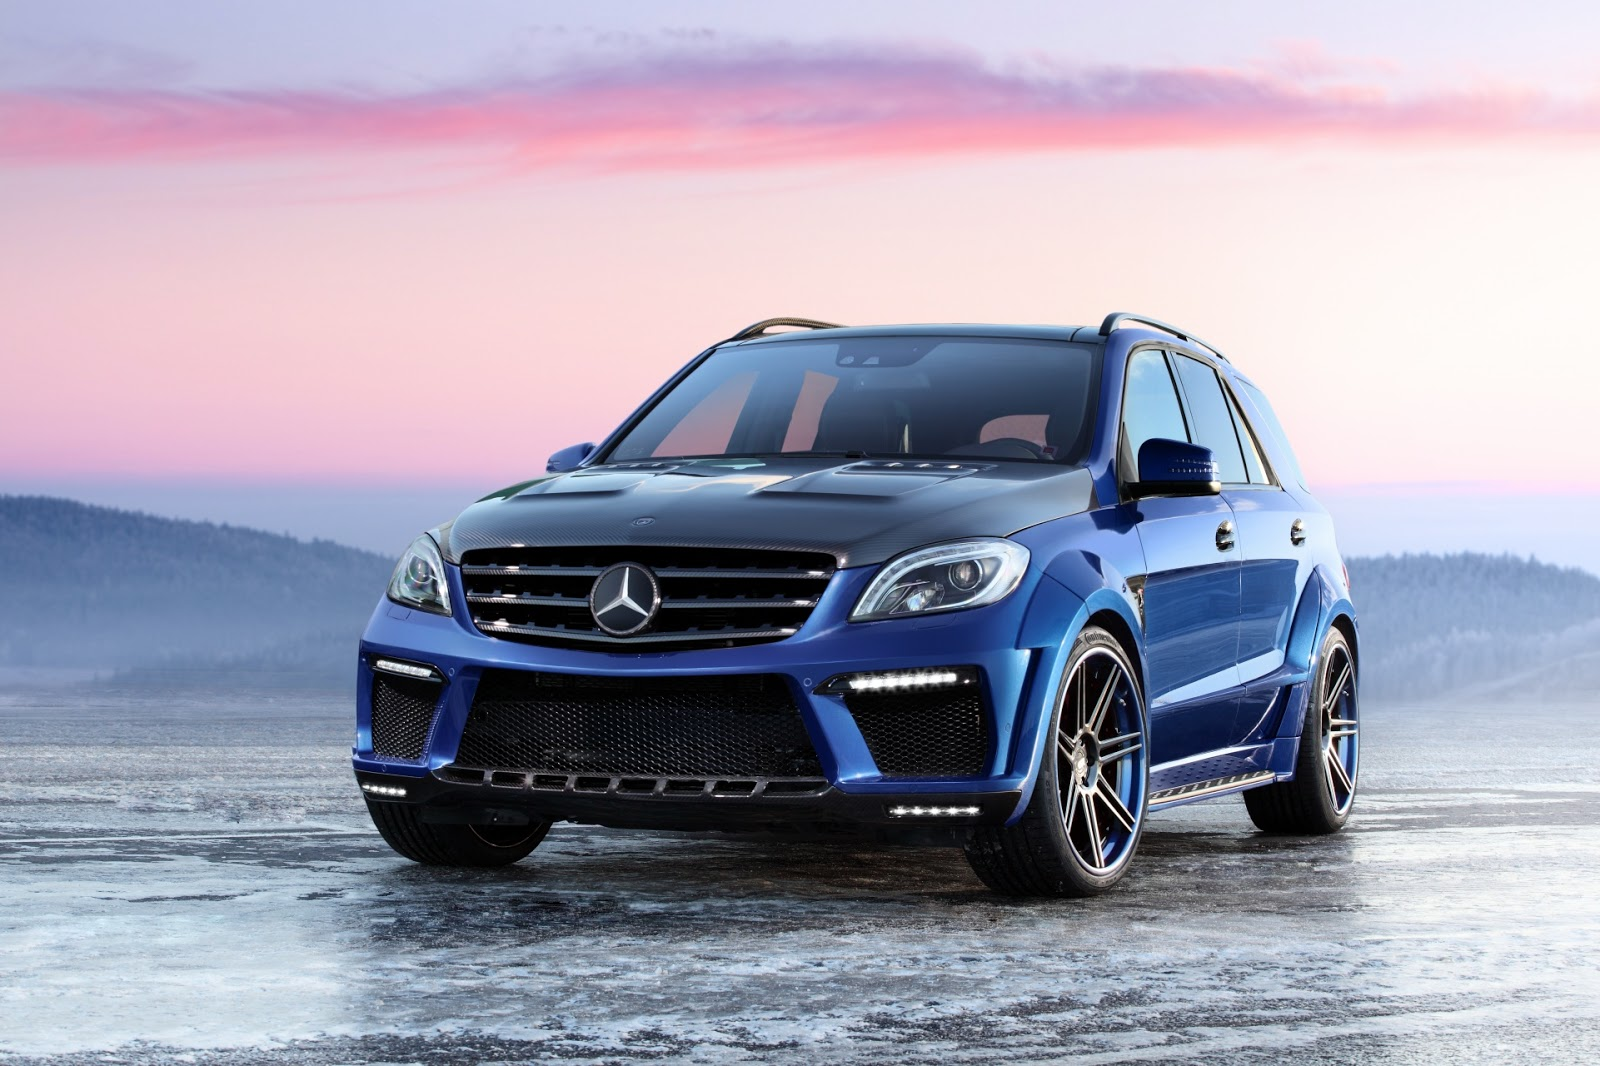 all tuning cars nz 2012 topcar mercedes benz ml63 amg inferno. Black Bedroom Furniture Sets. Home Design Ideas